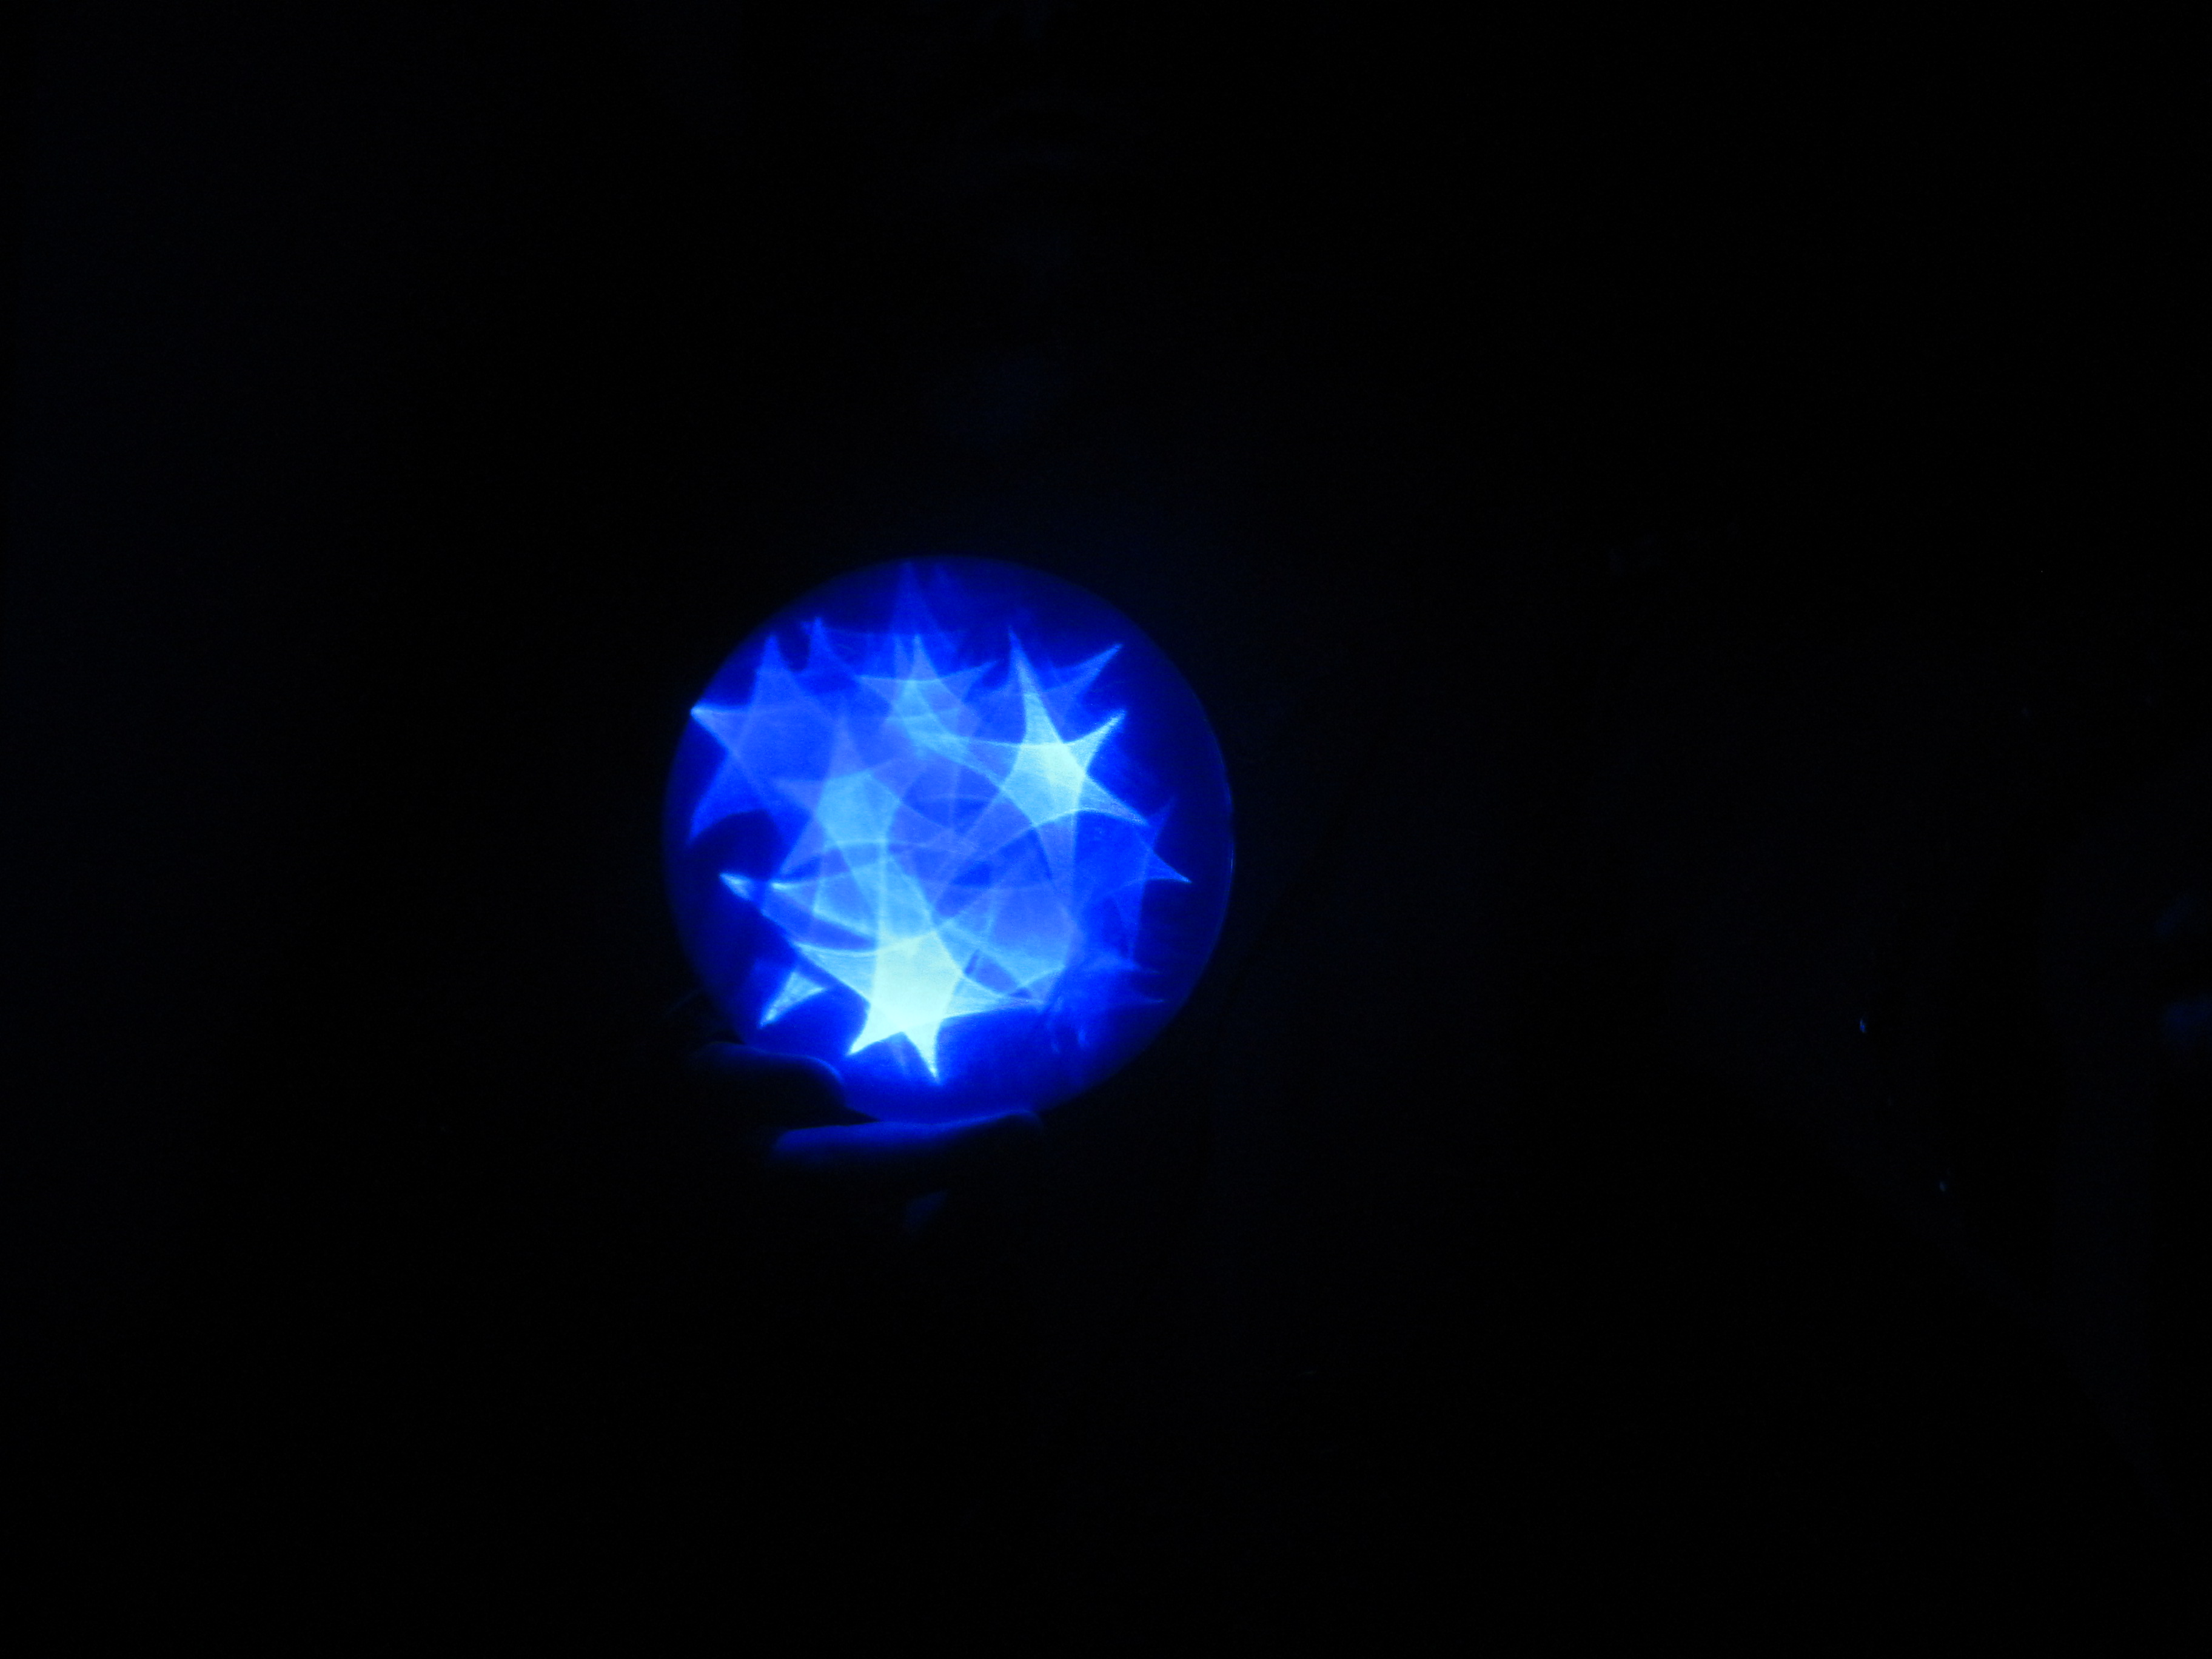 Blue Star Orb 1 by Windthin